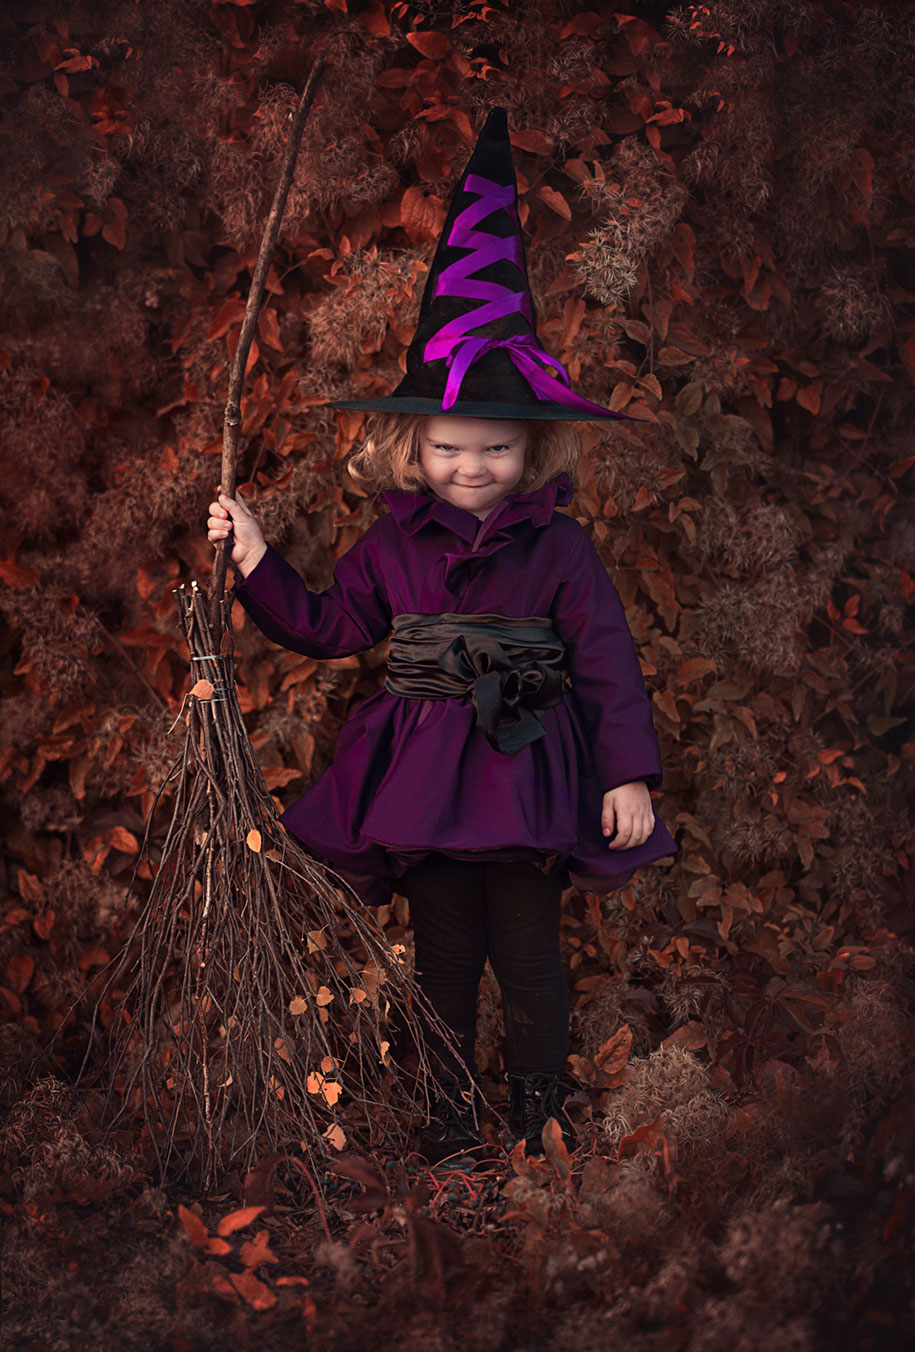 photographer-captures-children-in-costumes-childhood-anna-rozwadowska-5